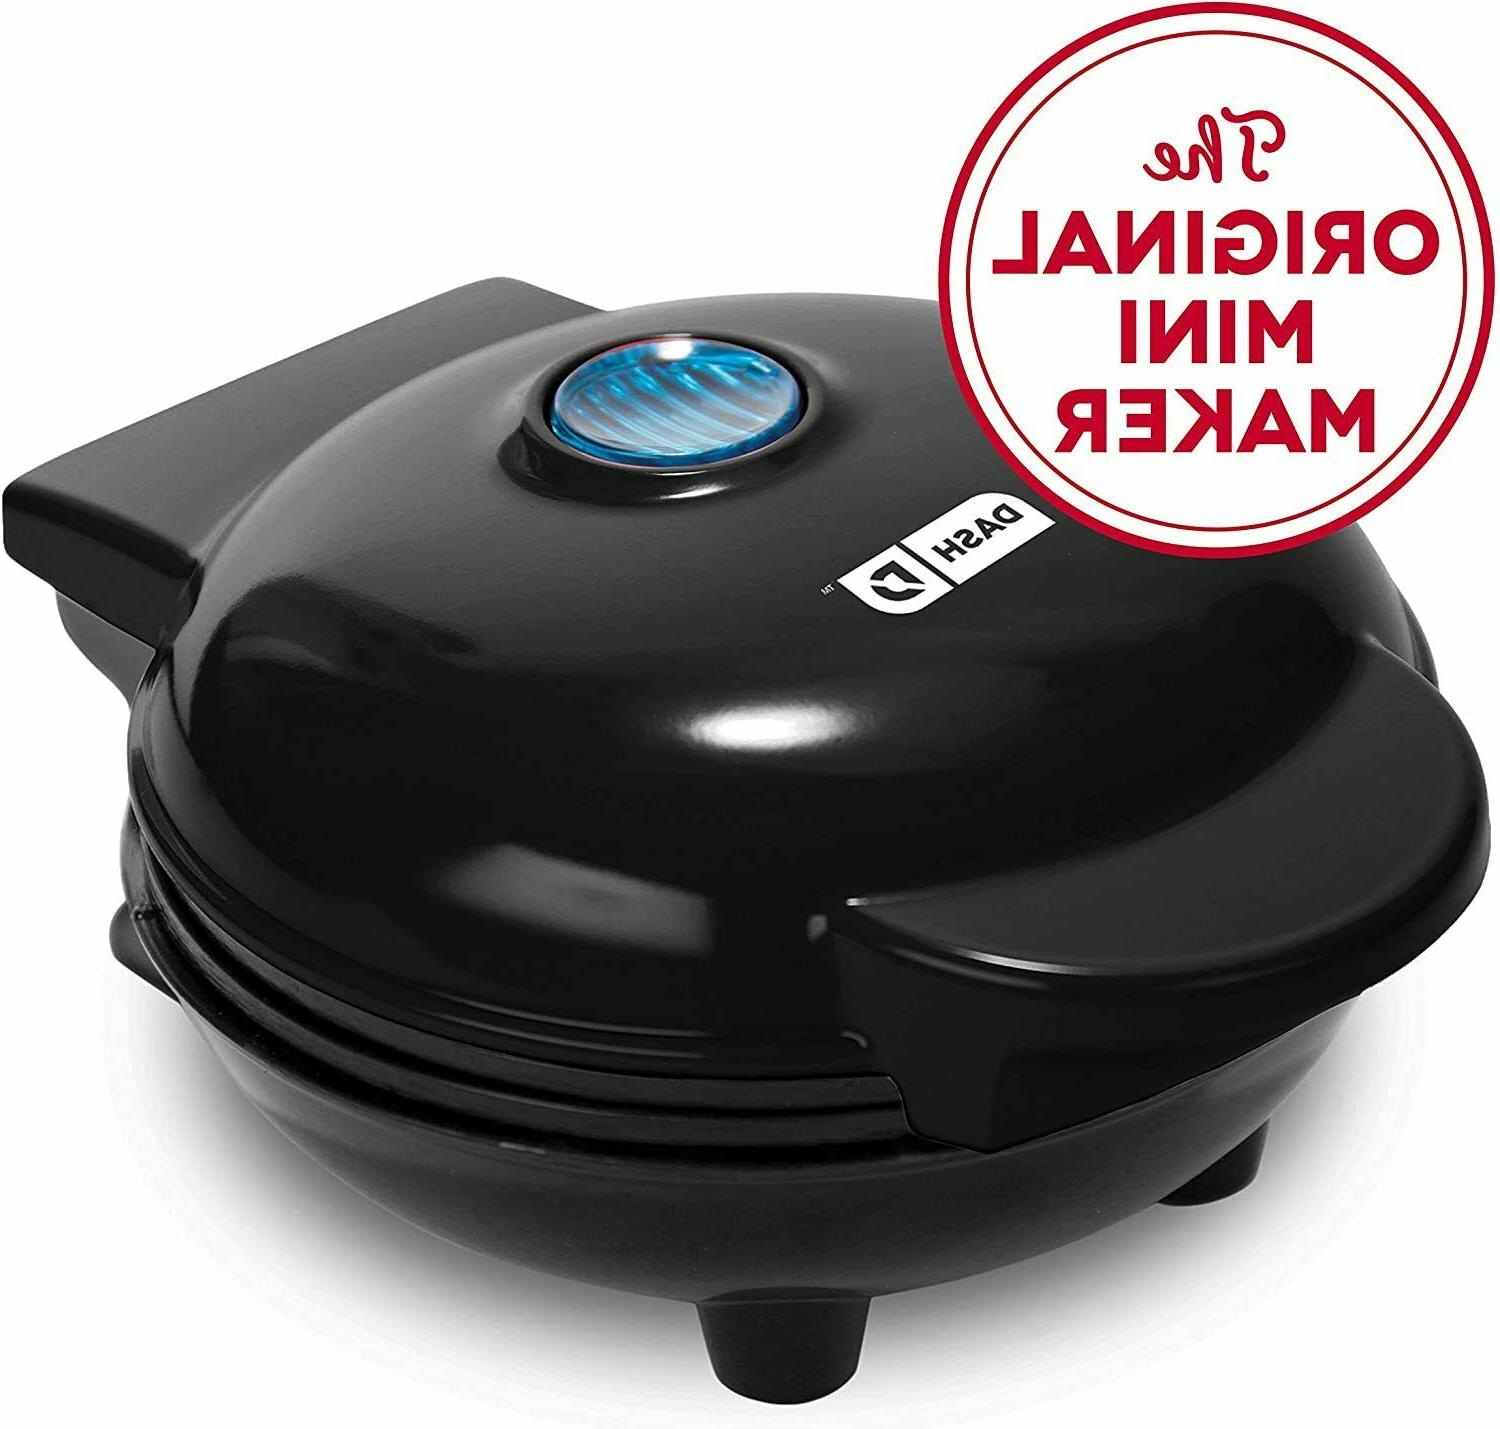 Black Mini Waffle Maker Machine for Individual Waffles, Pani